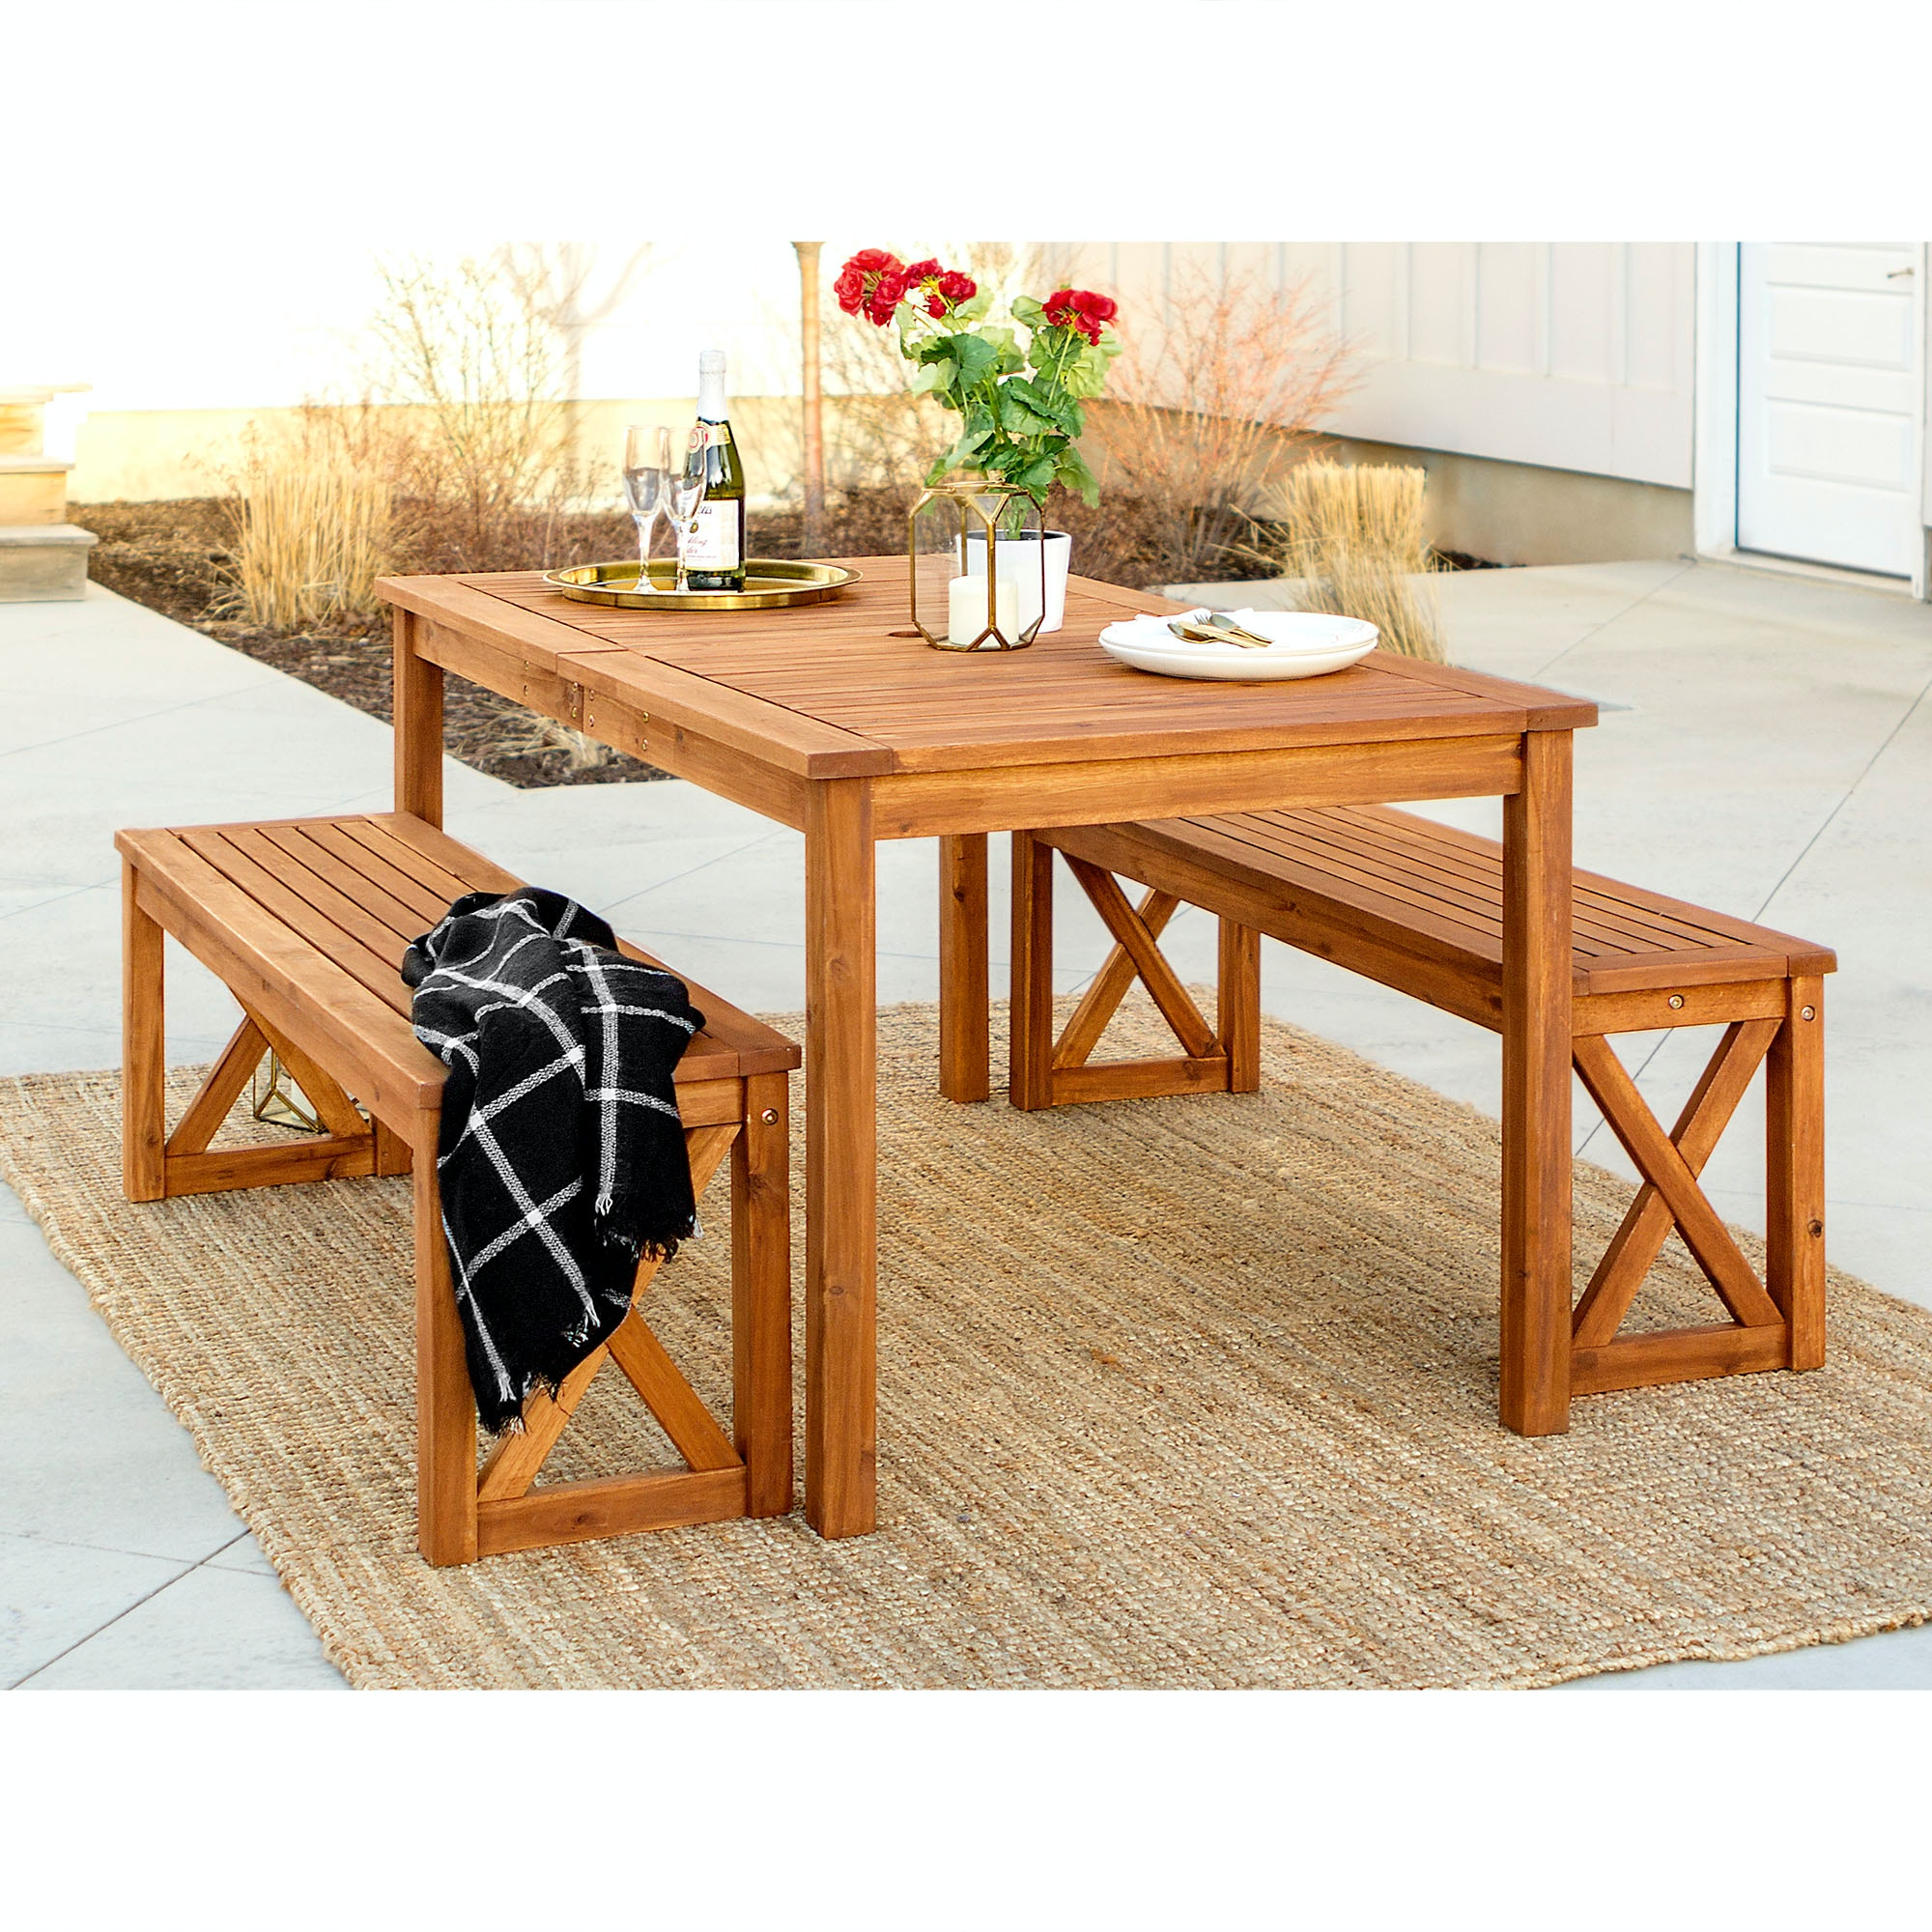 Ft Myers Outdoorpatio Outdoor Acacia Wood Simple Patio 3 Piece Dining Set With X Design Brown Wedow3xsdtbr Walter E Smithe Furniture Design